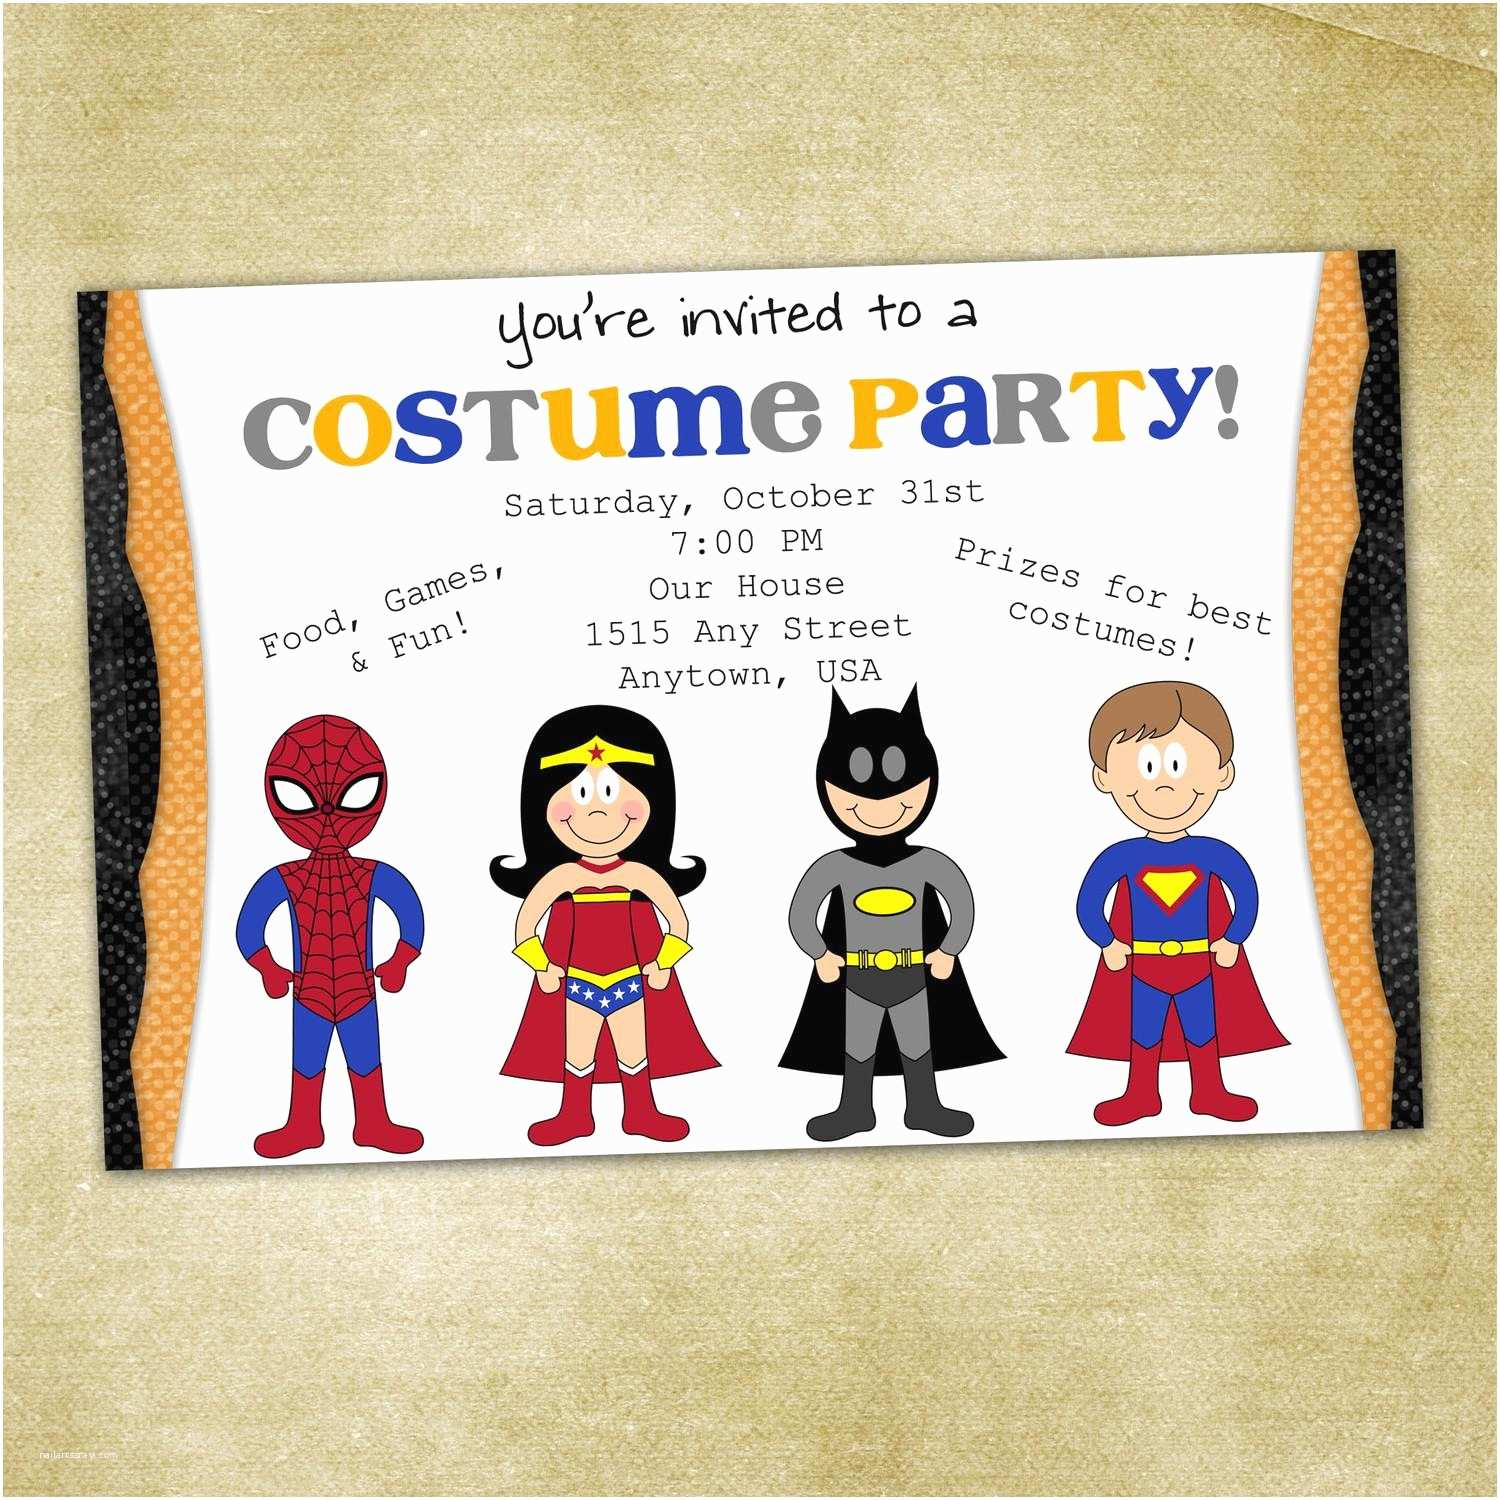 Costume Party Invitation Wording Costume Party